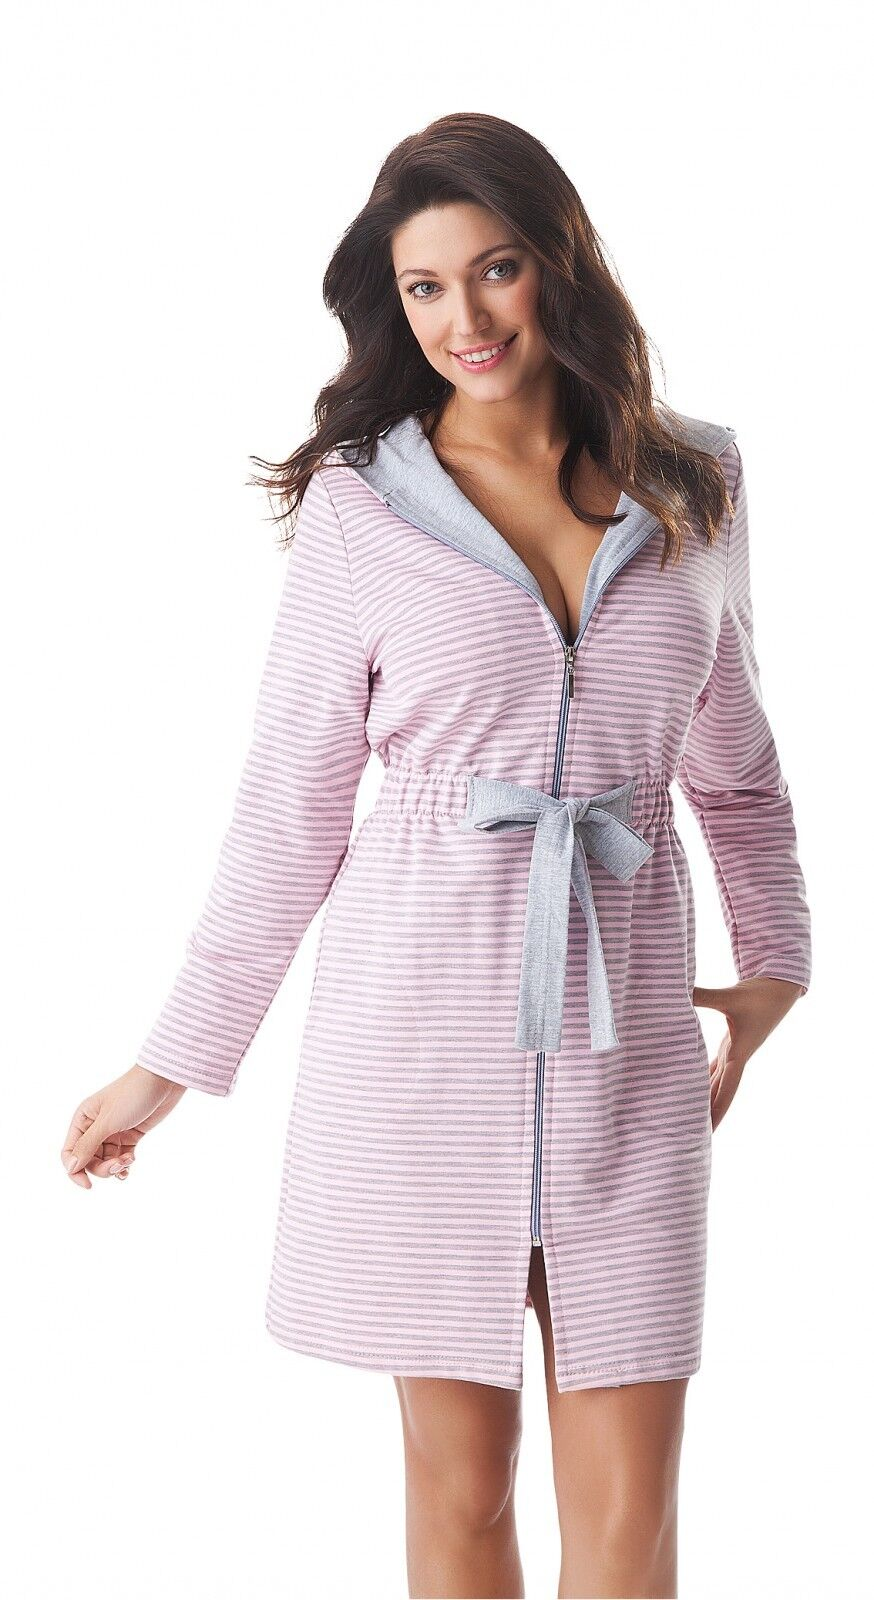 New Womens Short Zip Up Striped Hooded Bathrobe Dressing Gown Size ...